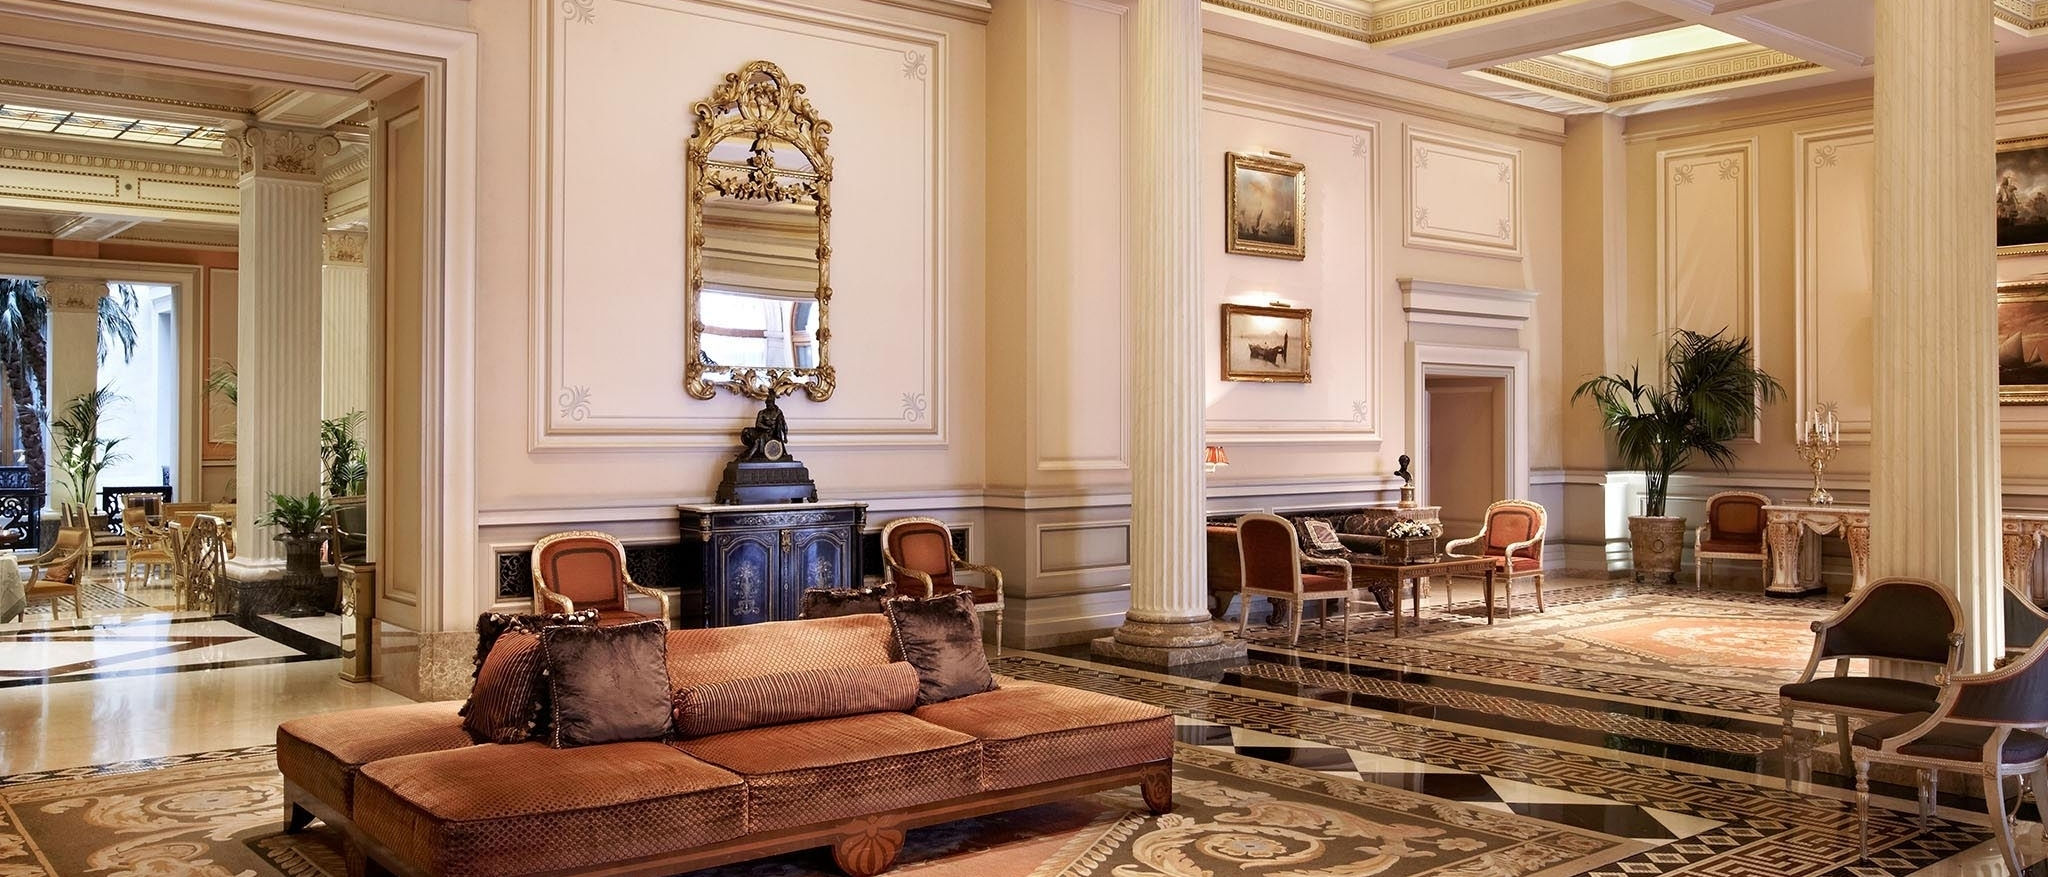 The majestic lobby of Hotel Grande Bretagne located in the heart of Athens